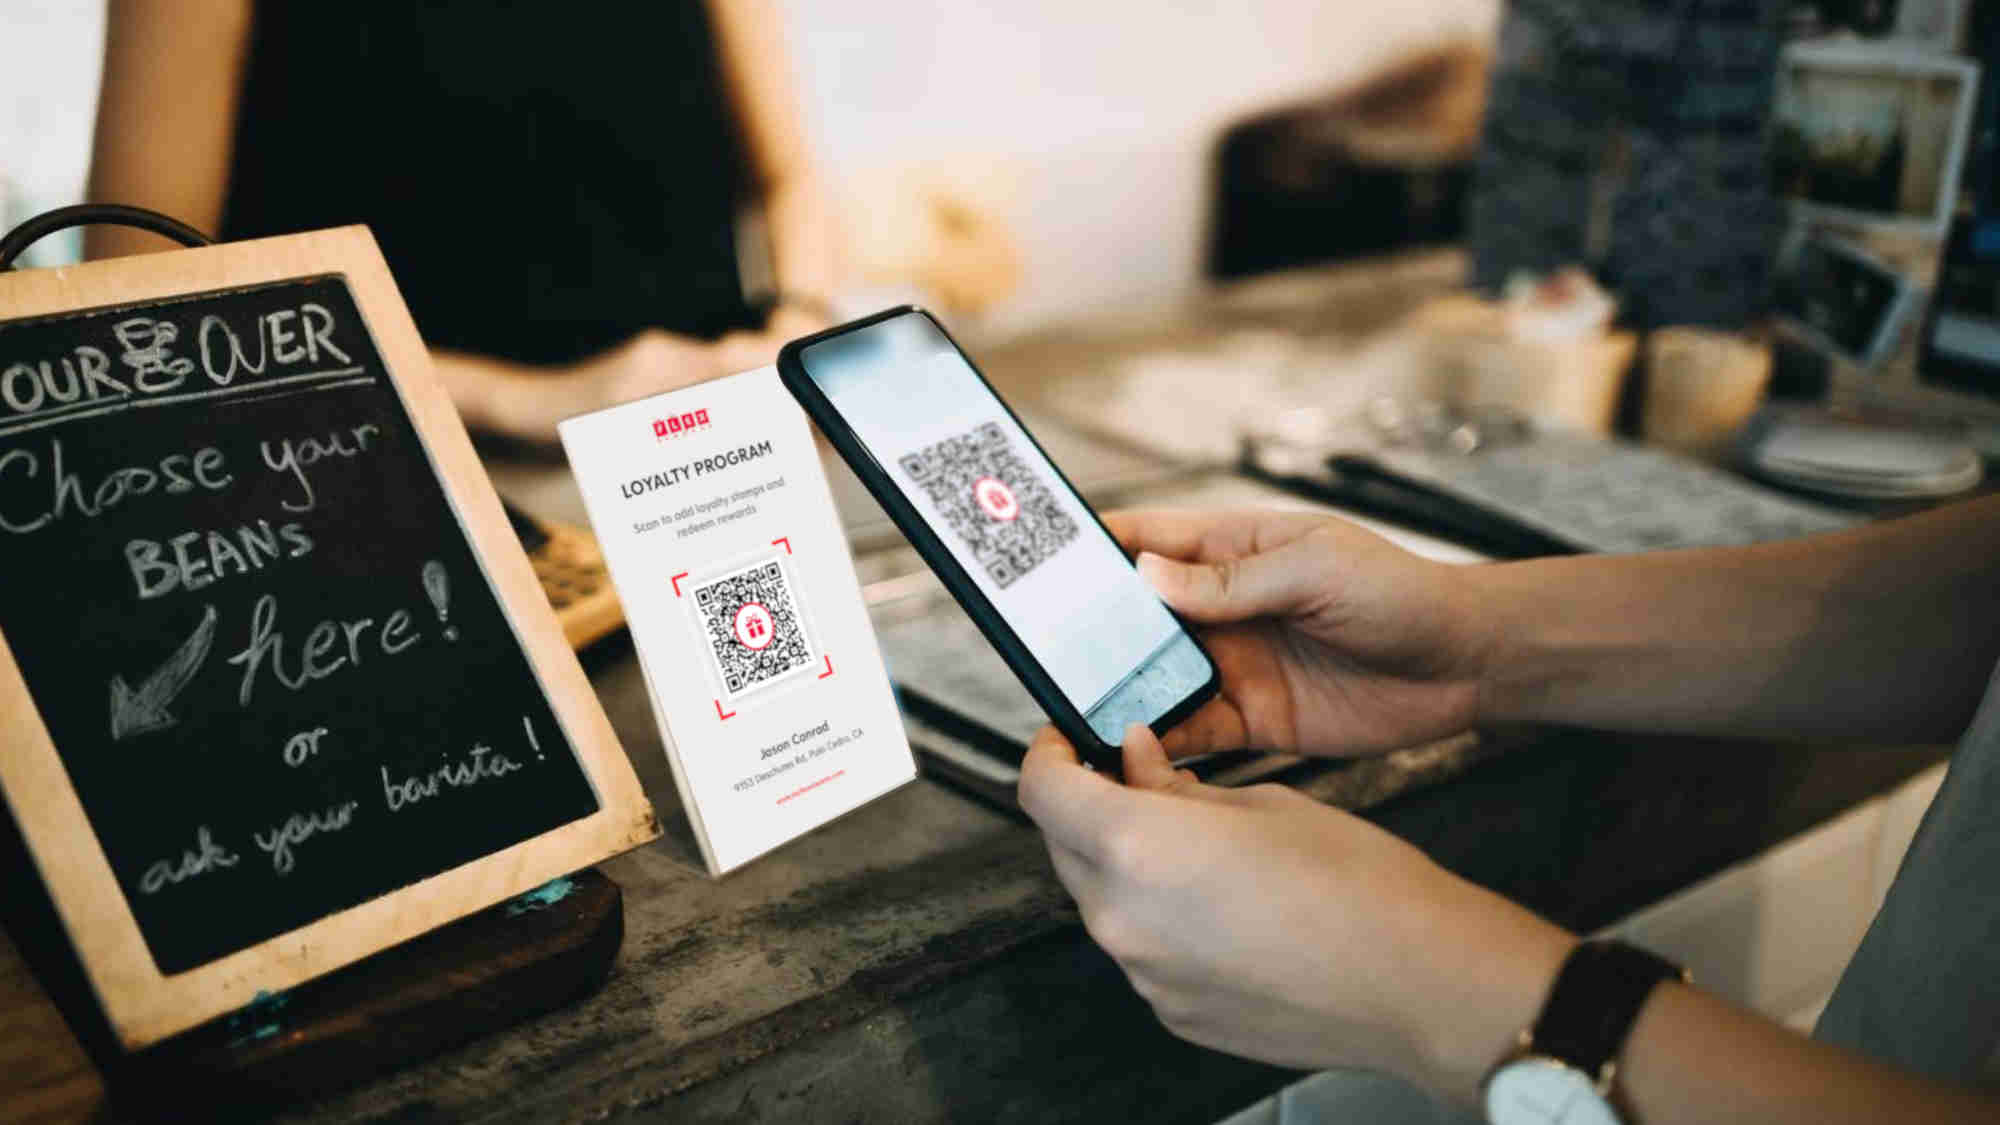 Flex Rewards Counter Display of QR Code to Join Loyalty Program and Add Stamp